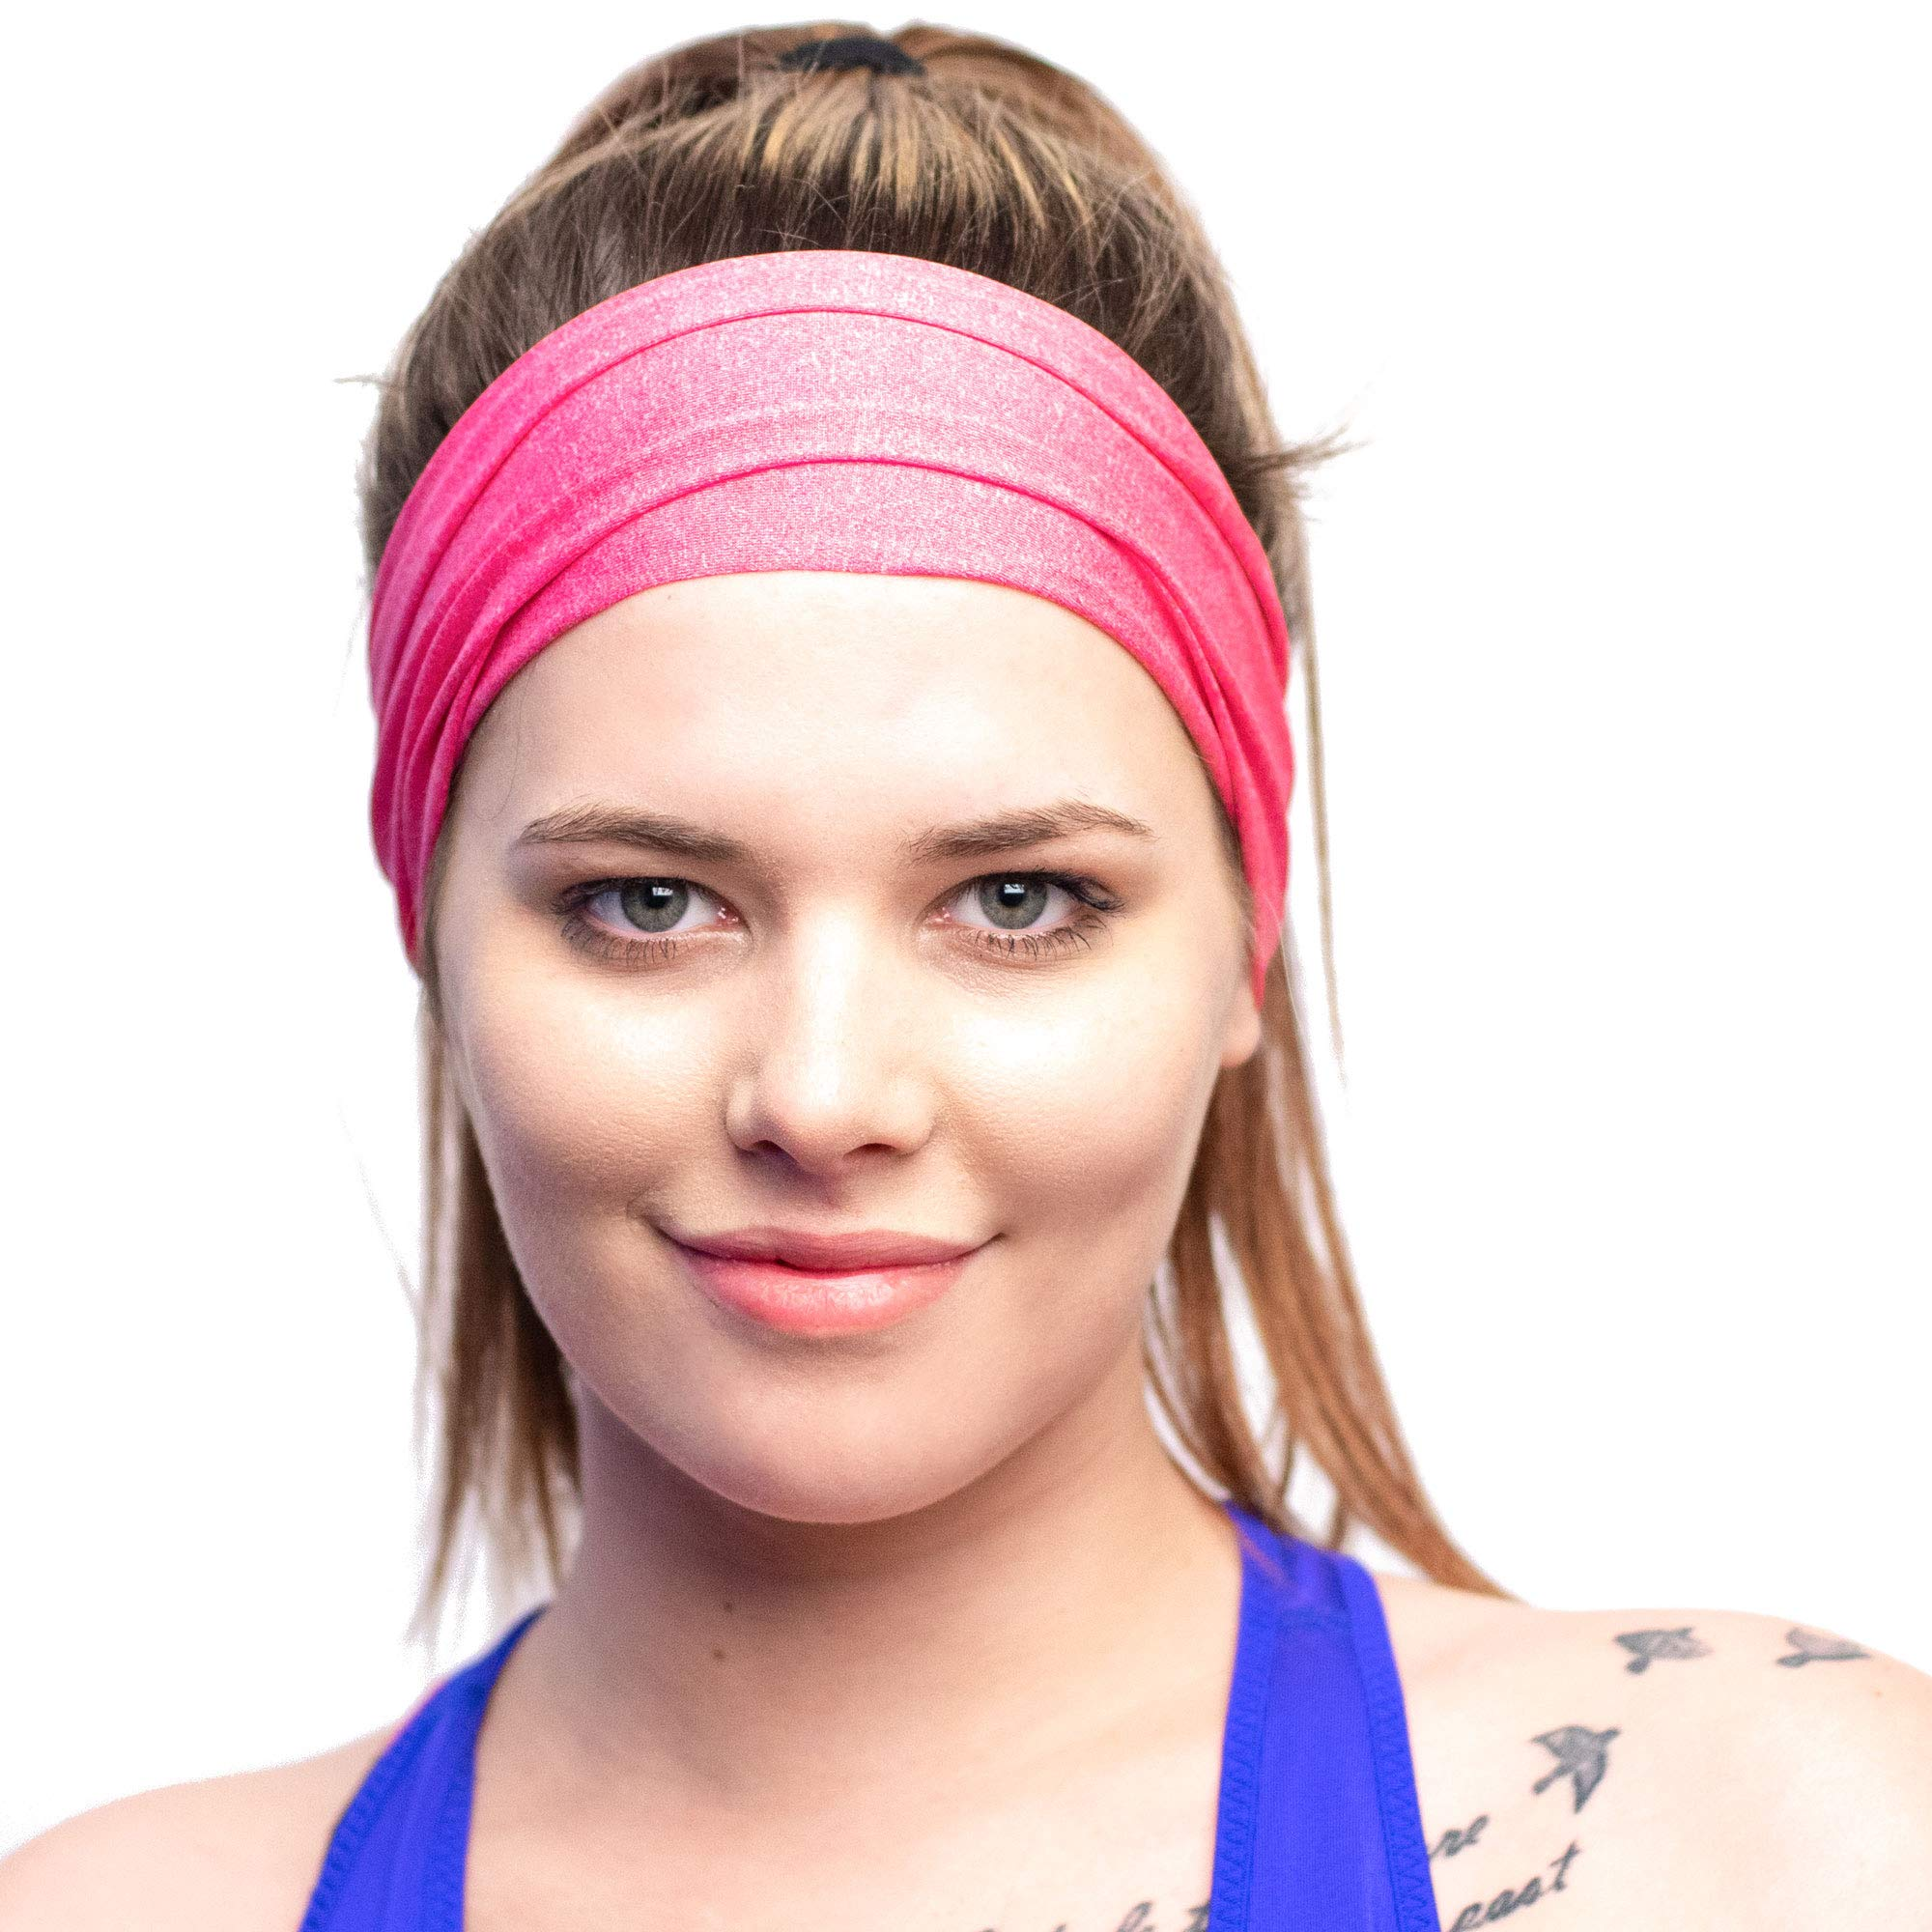 Red Dust Active Running Sweatband - Lightweight, Non-Slip, Wide & Sweat Wicking - Pink Workout Headband Made for Active Lifestyles by Red Dust Active (Image #1)